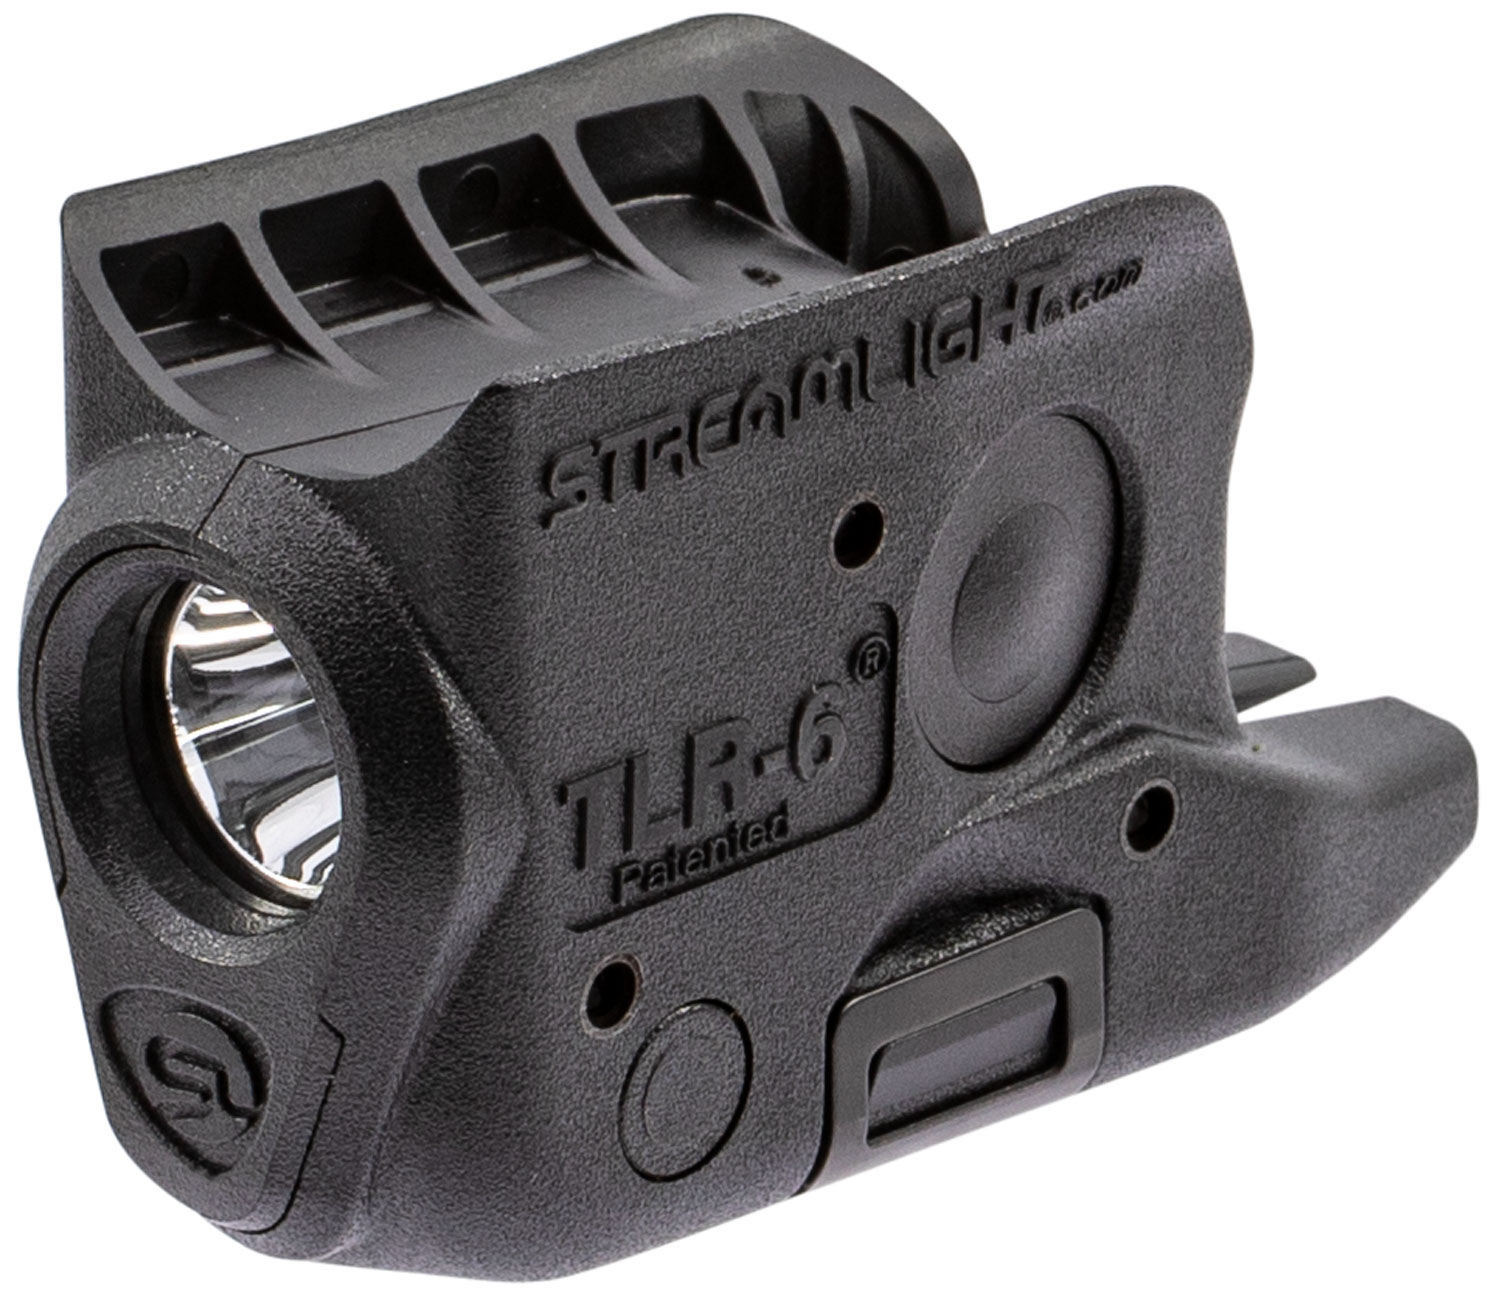 Streamlight 69280 TLR-6 Weapon Light fits Glock 42/43 White LED 100 Lumens 1/3N Lithium Battery Black Polymer No Laser